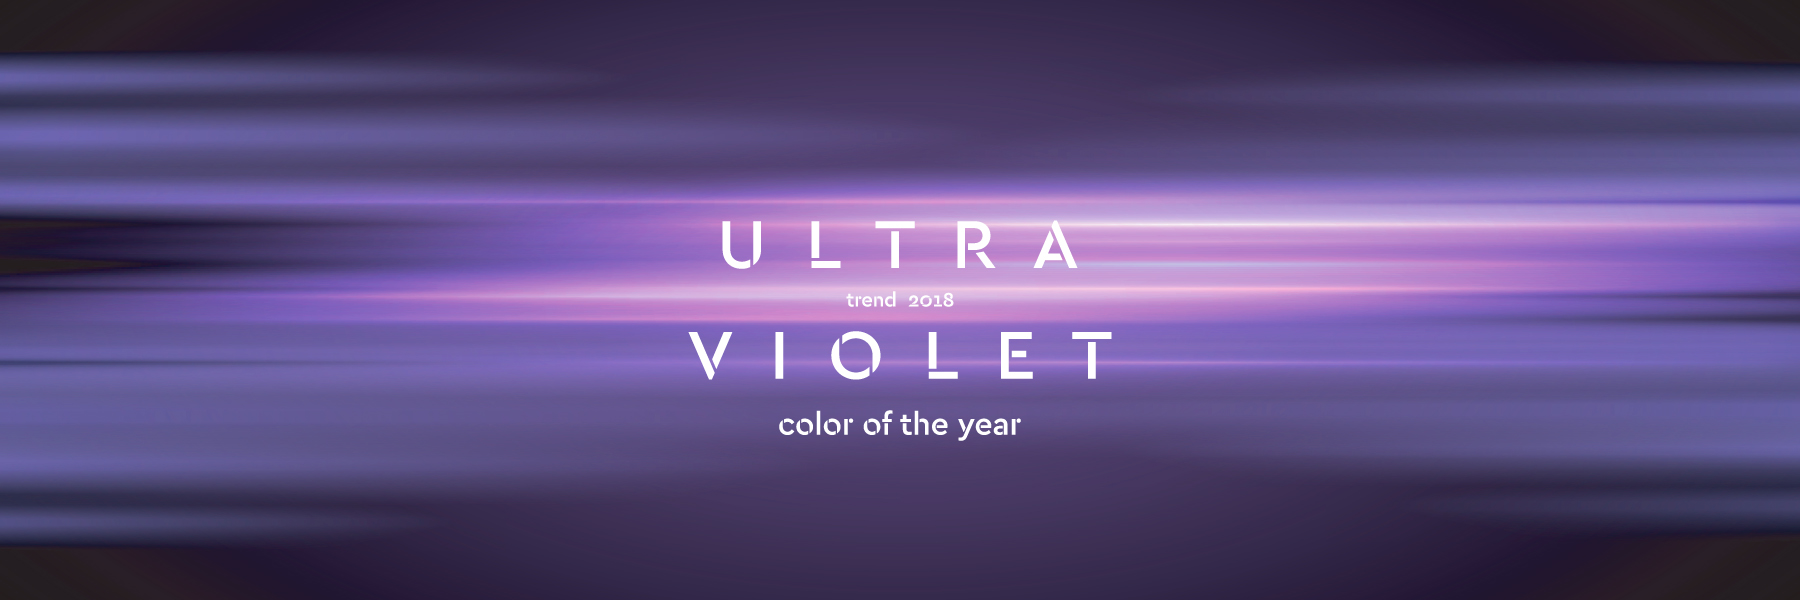 2018-color-of-the-year-ultra-violet